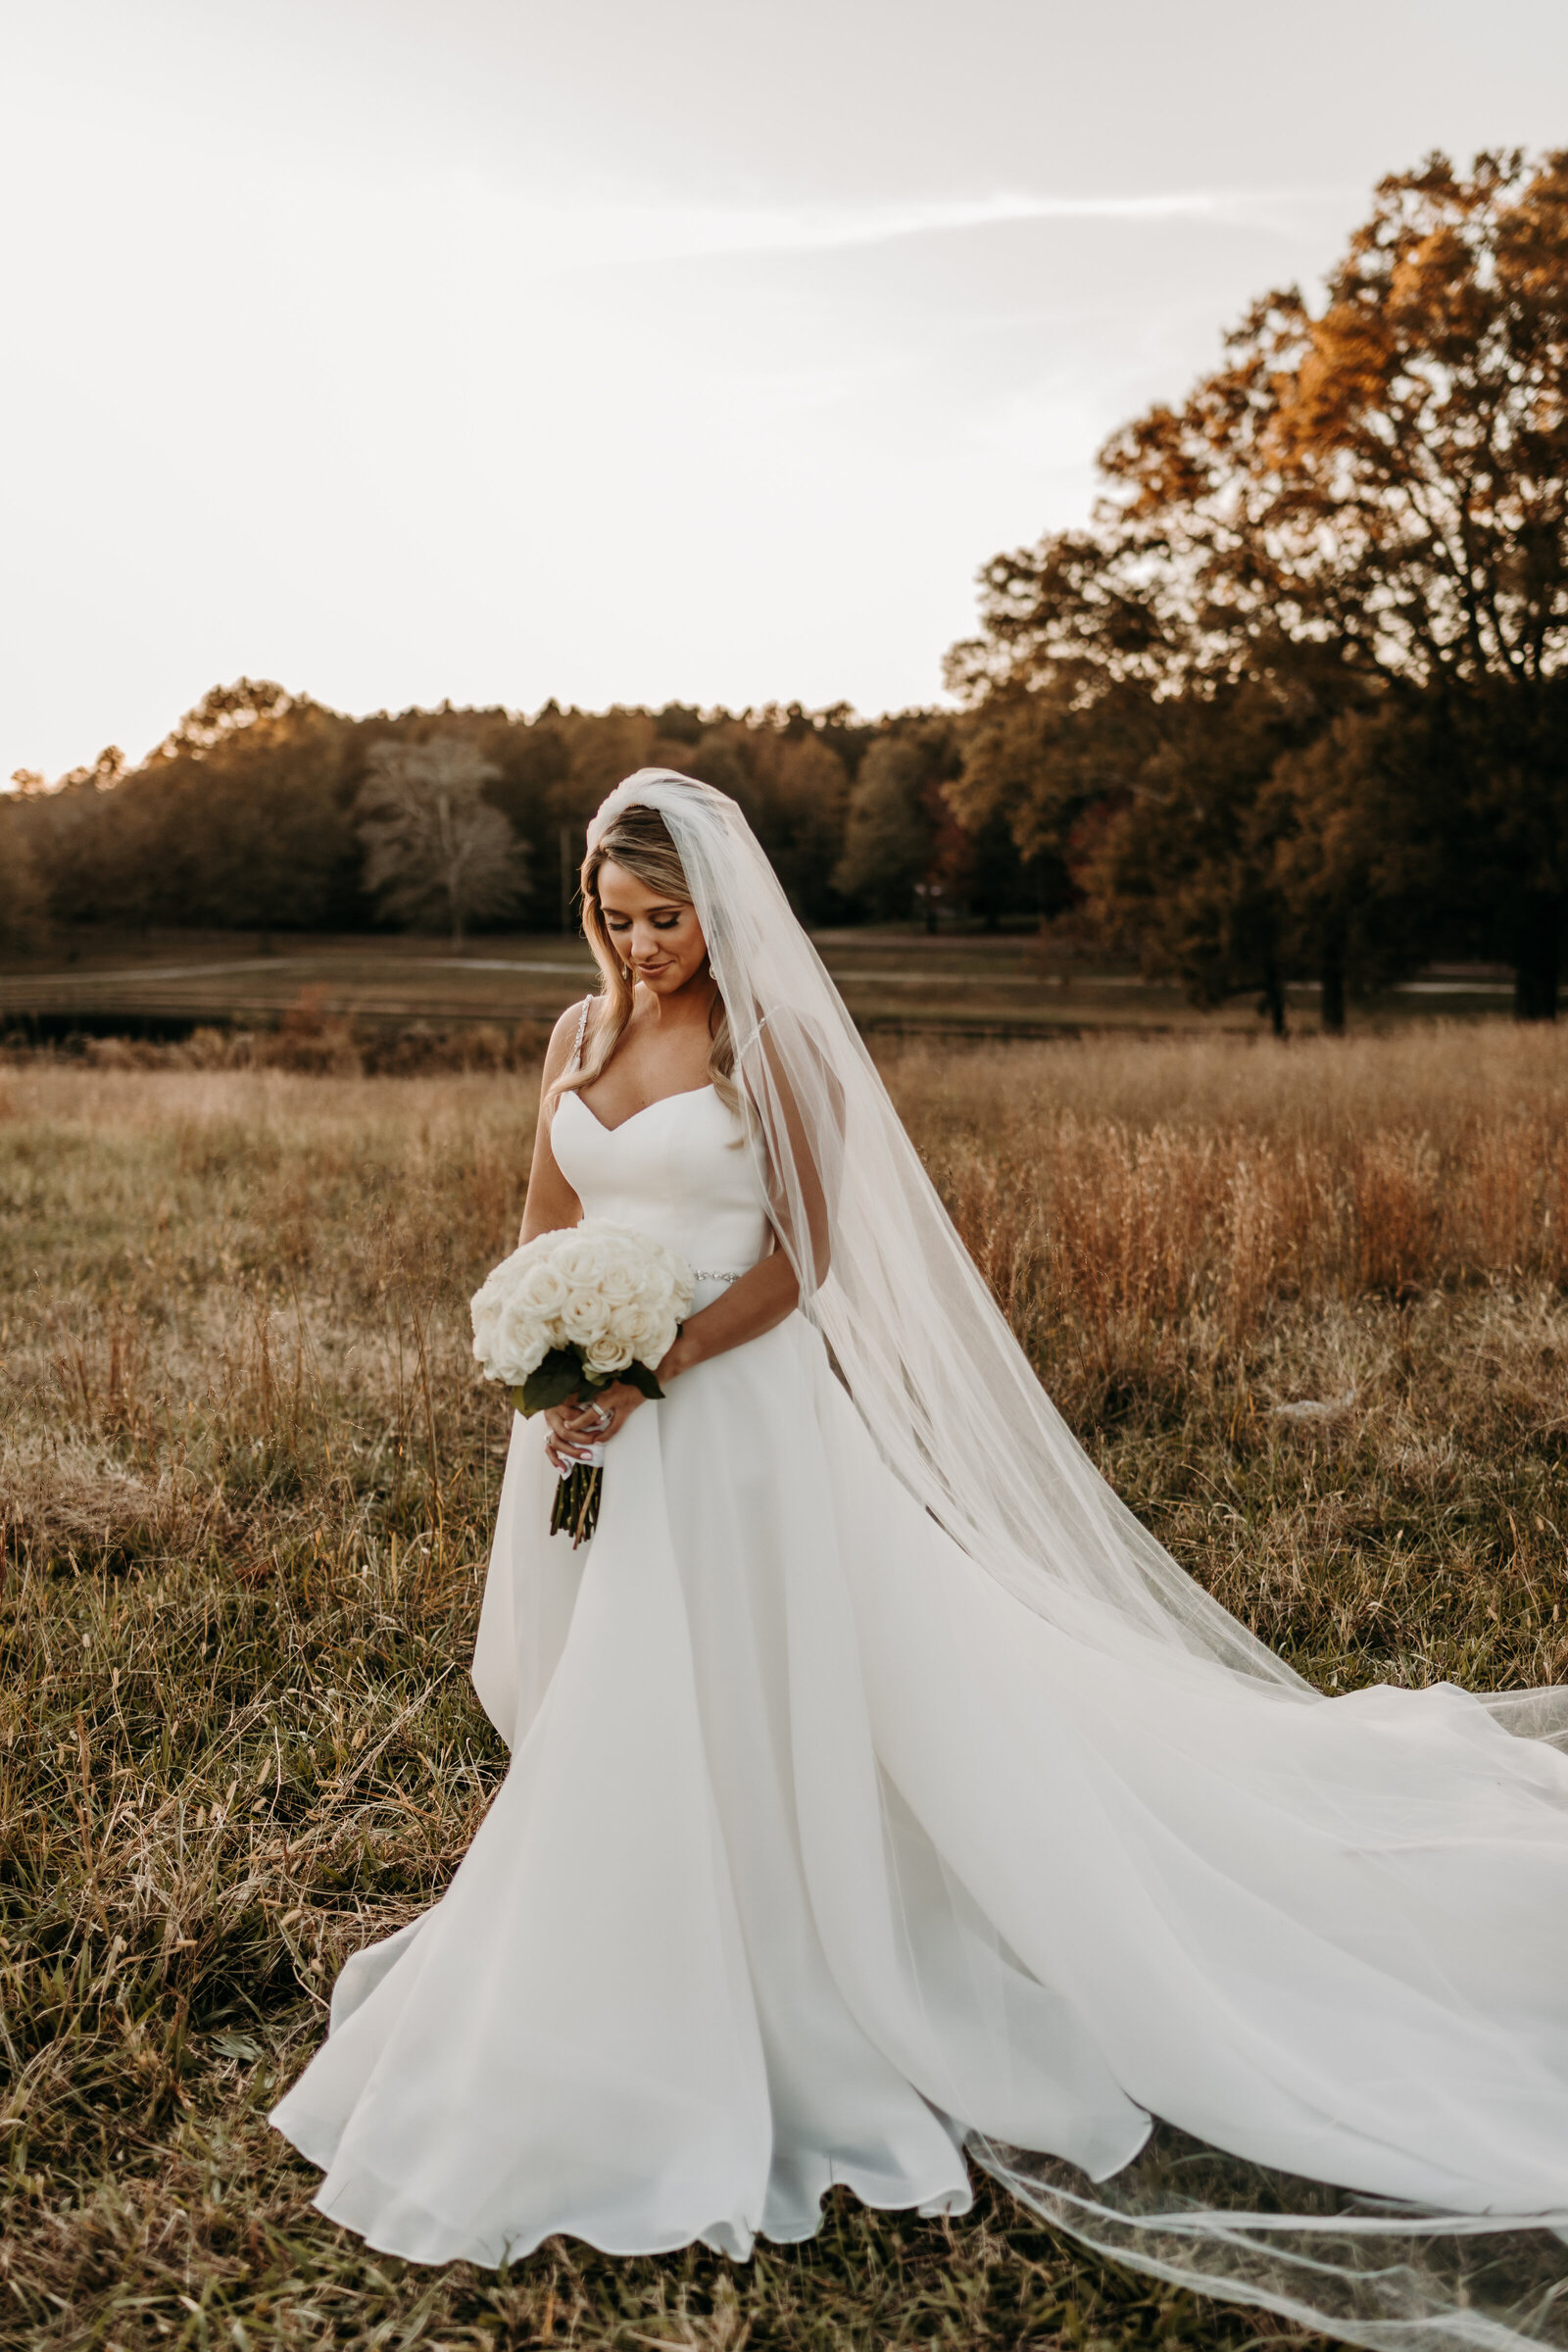 J.Michelle Photography photographs bridal portraits at vintage oaks farm wedding in Athens, Ga